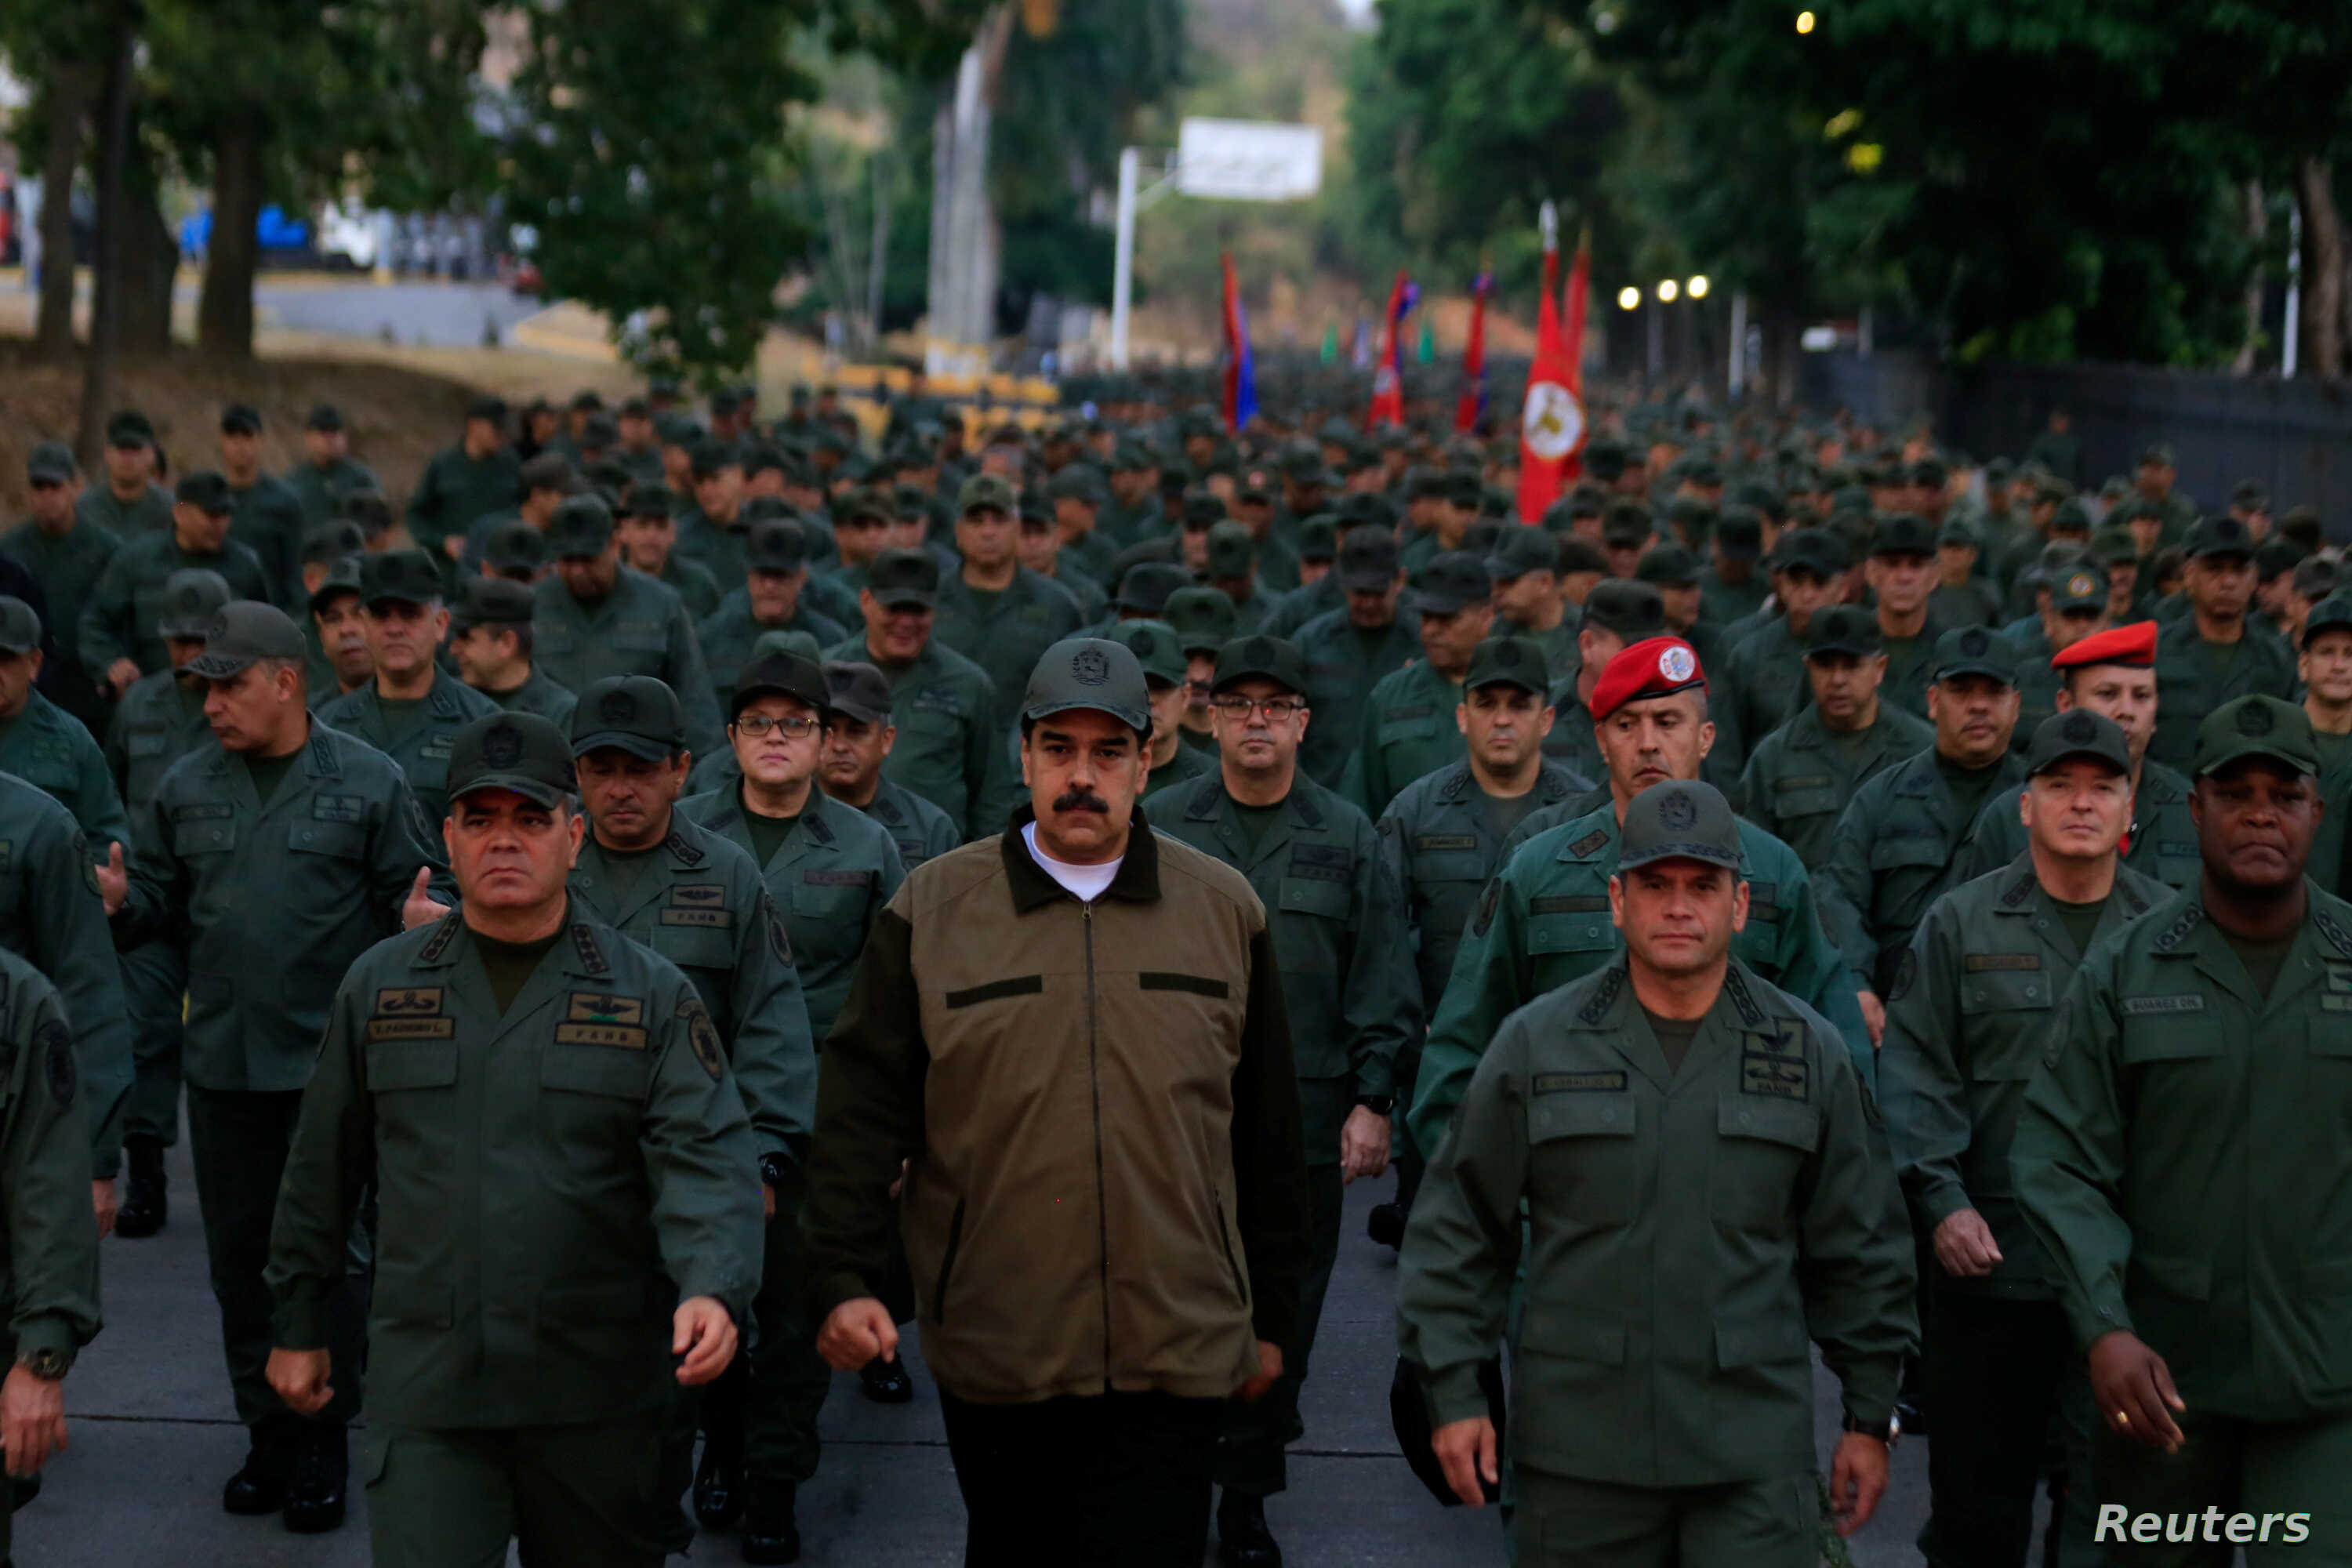 Venezuela's President Nicolas Maduro walks next to Venezuela's Defense Minister Vladimir Padrino Lopez and Remigio Ceballos, Strategic Operational Commander of the Bolivarian National Armed Forces, during a ceremony at a military base in Caracas, Ven...